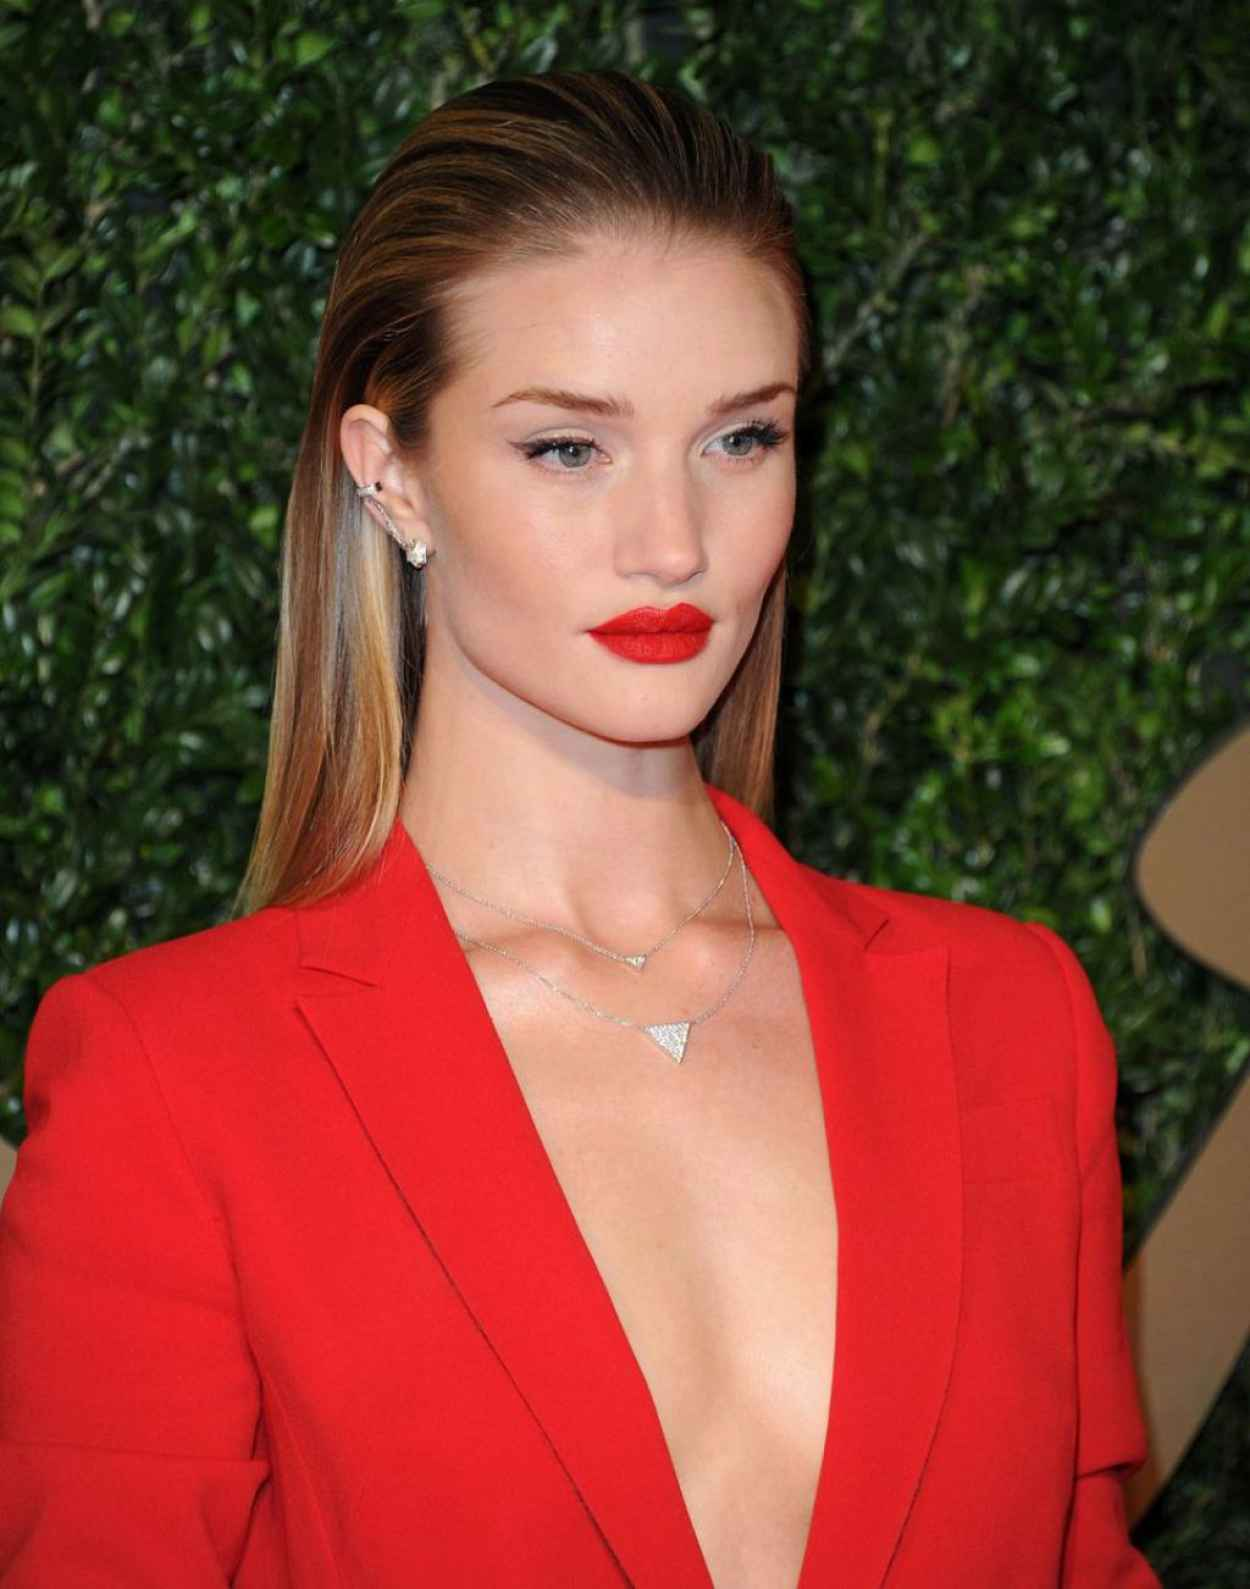 Rosie Huntington-Whiteley at British Fashion Awards in London - December 2015-1